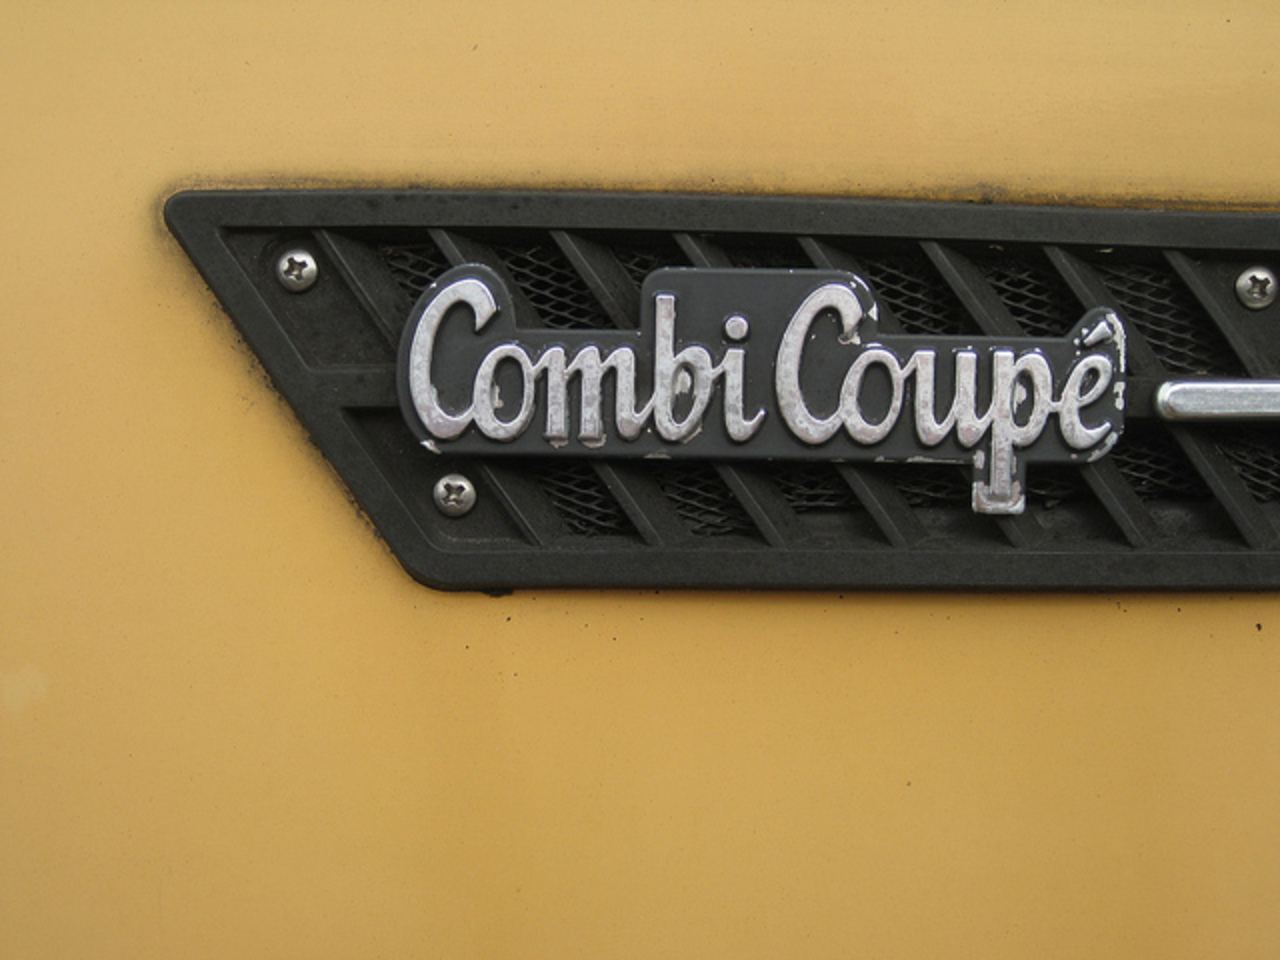 51-MZ-37 SAAB 99 GL combi coupé, 1976, emblem | Flickr - Photo ...